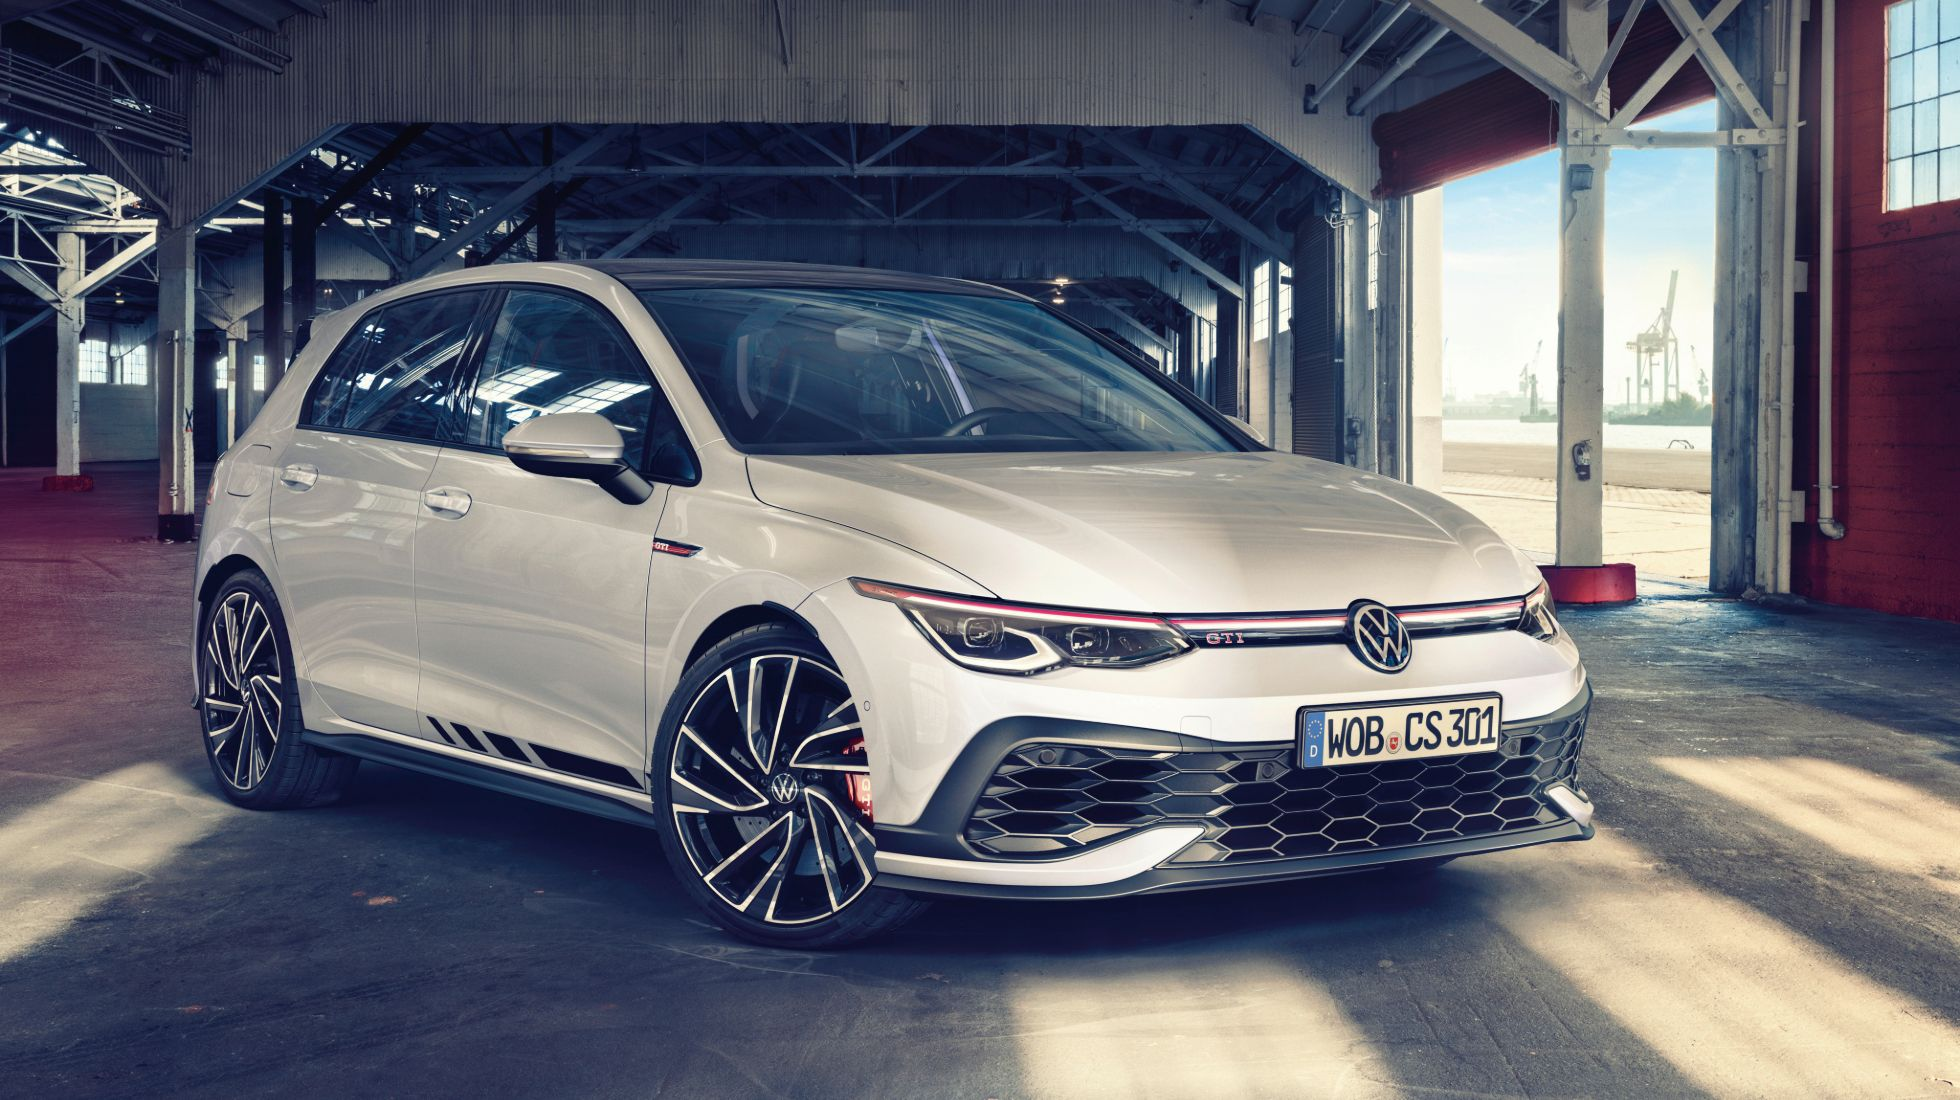 Volkswagen has unveiled the even sportier Golf GTI Clubsport - Sadly not destined for SA